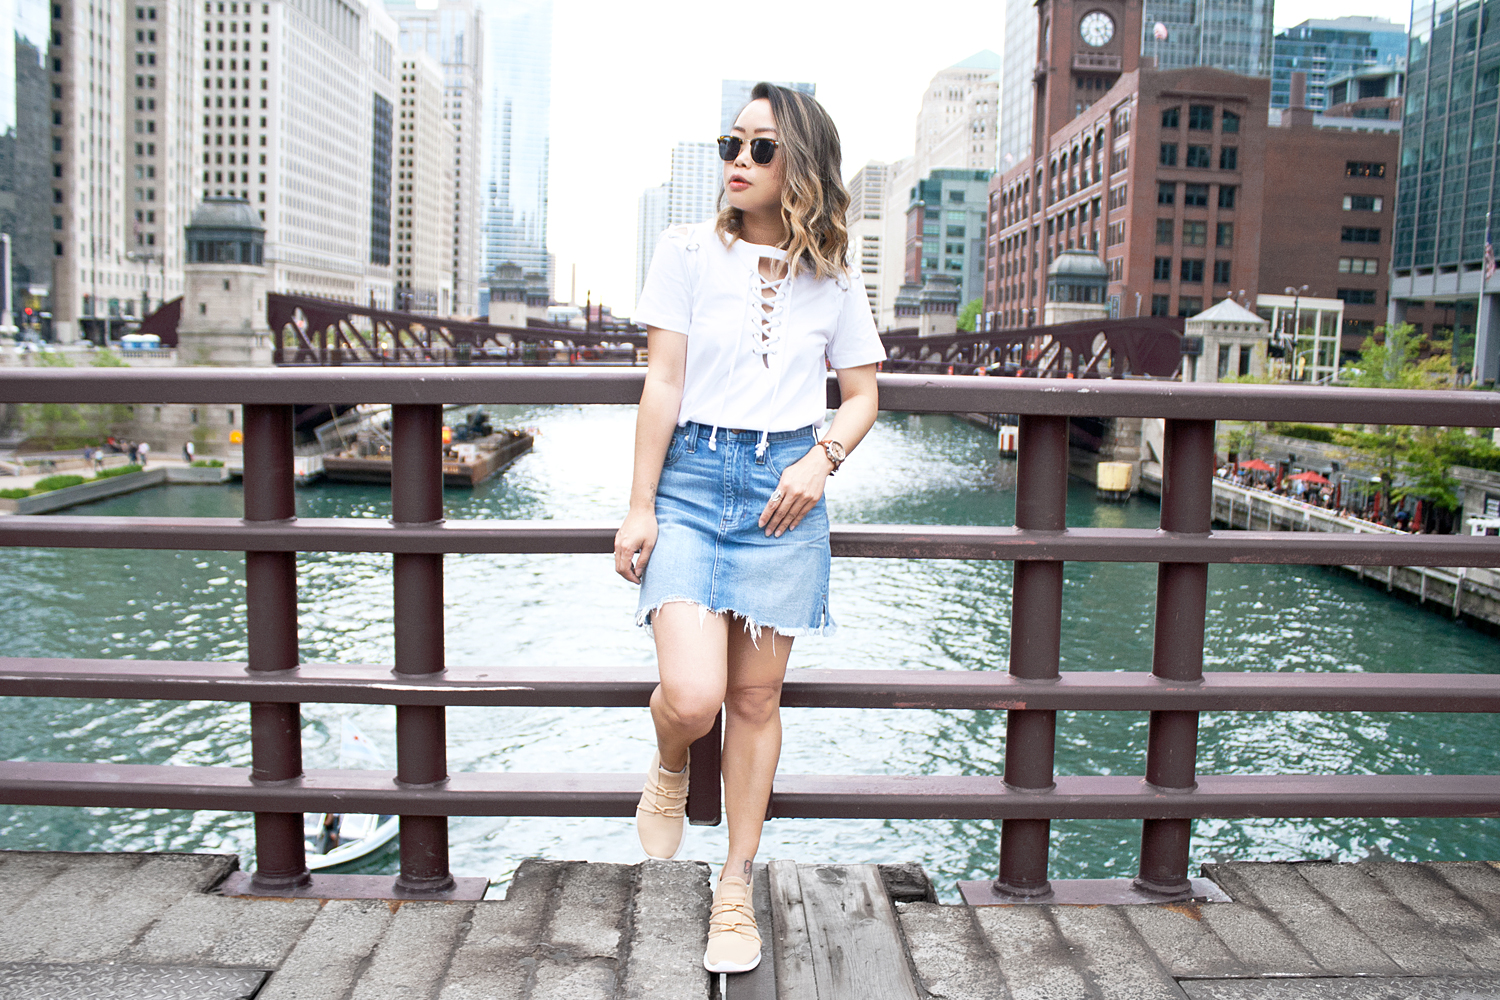 01chicago-cityscape-travel-fashion-style